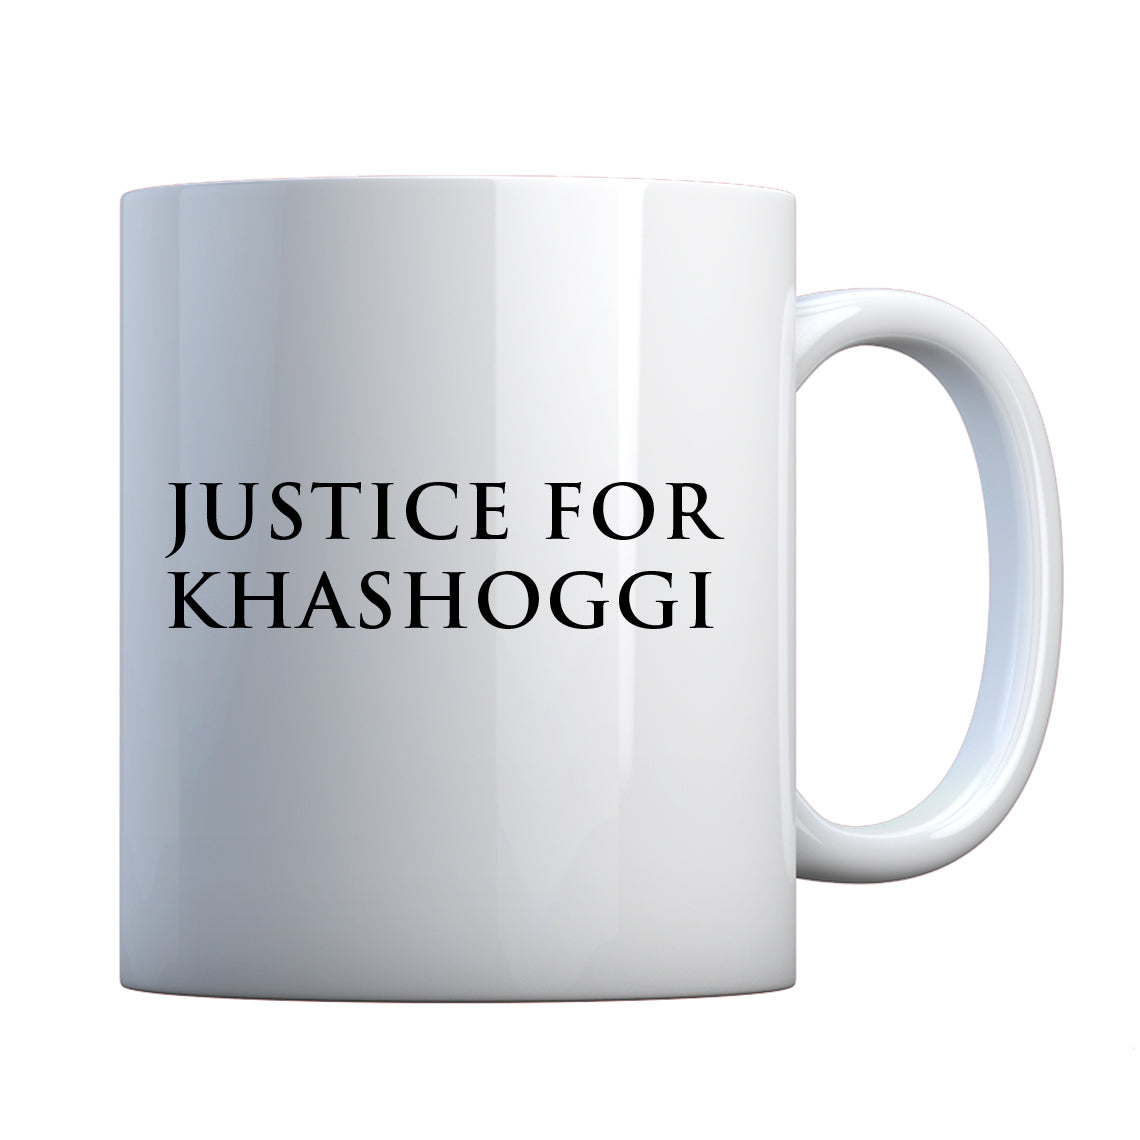 Justice for Khashoggi Ceramic Gift Mug